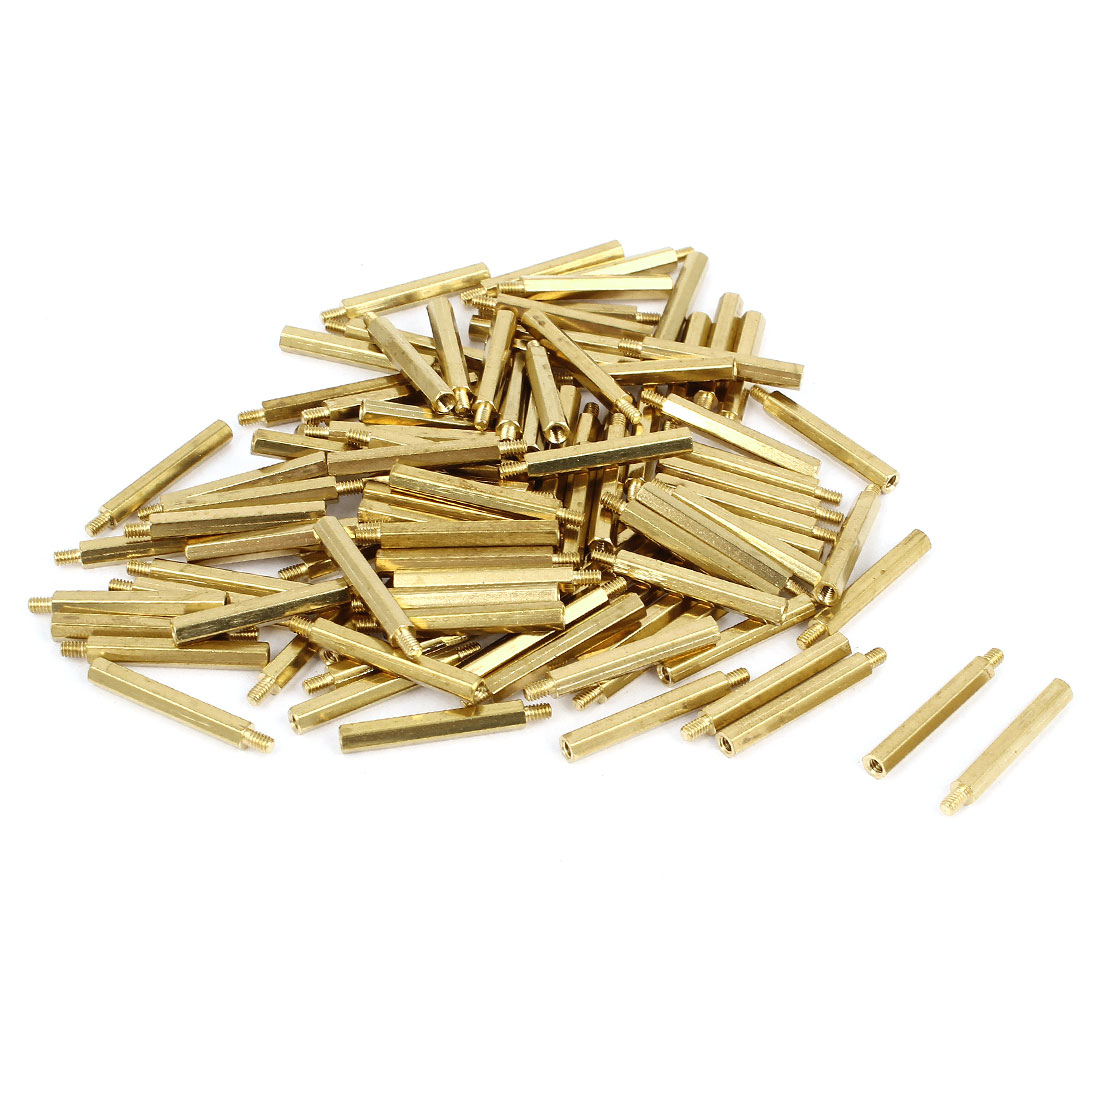 100 Pcs M2x20 Brass Column Male Hexagon Stand-off Spacers 3mm Thread Length